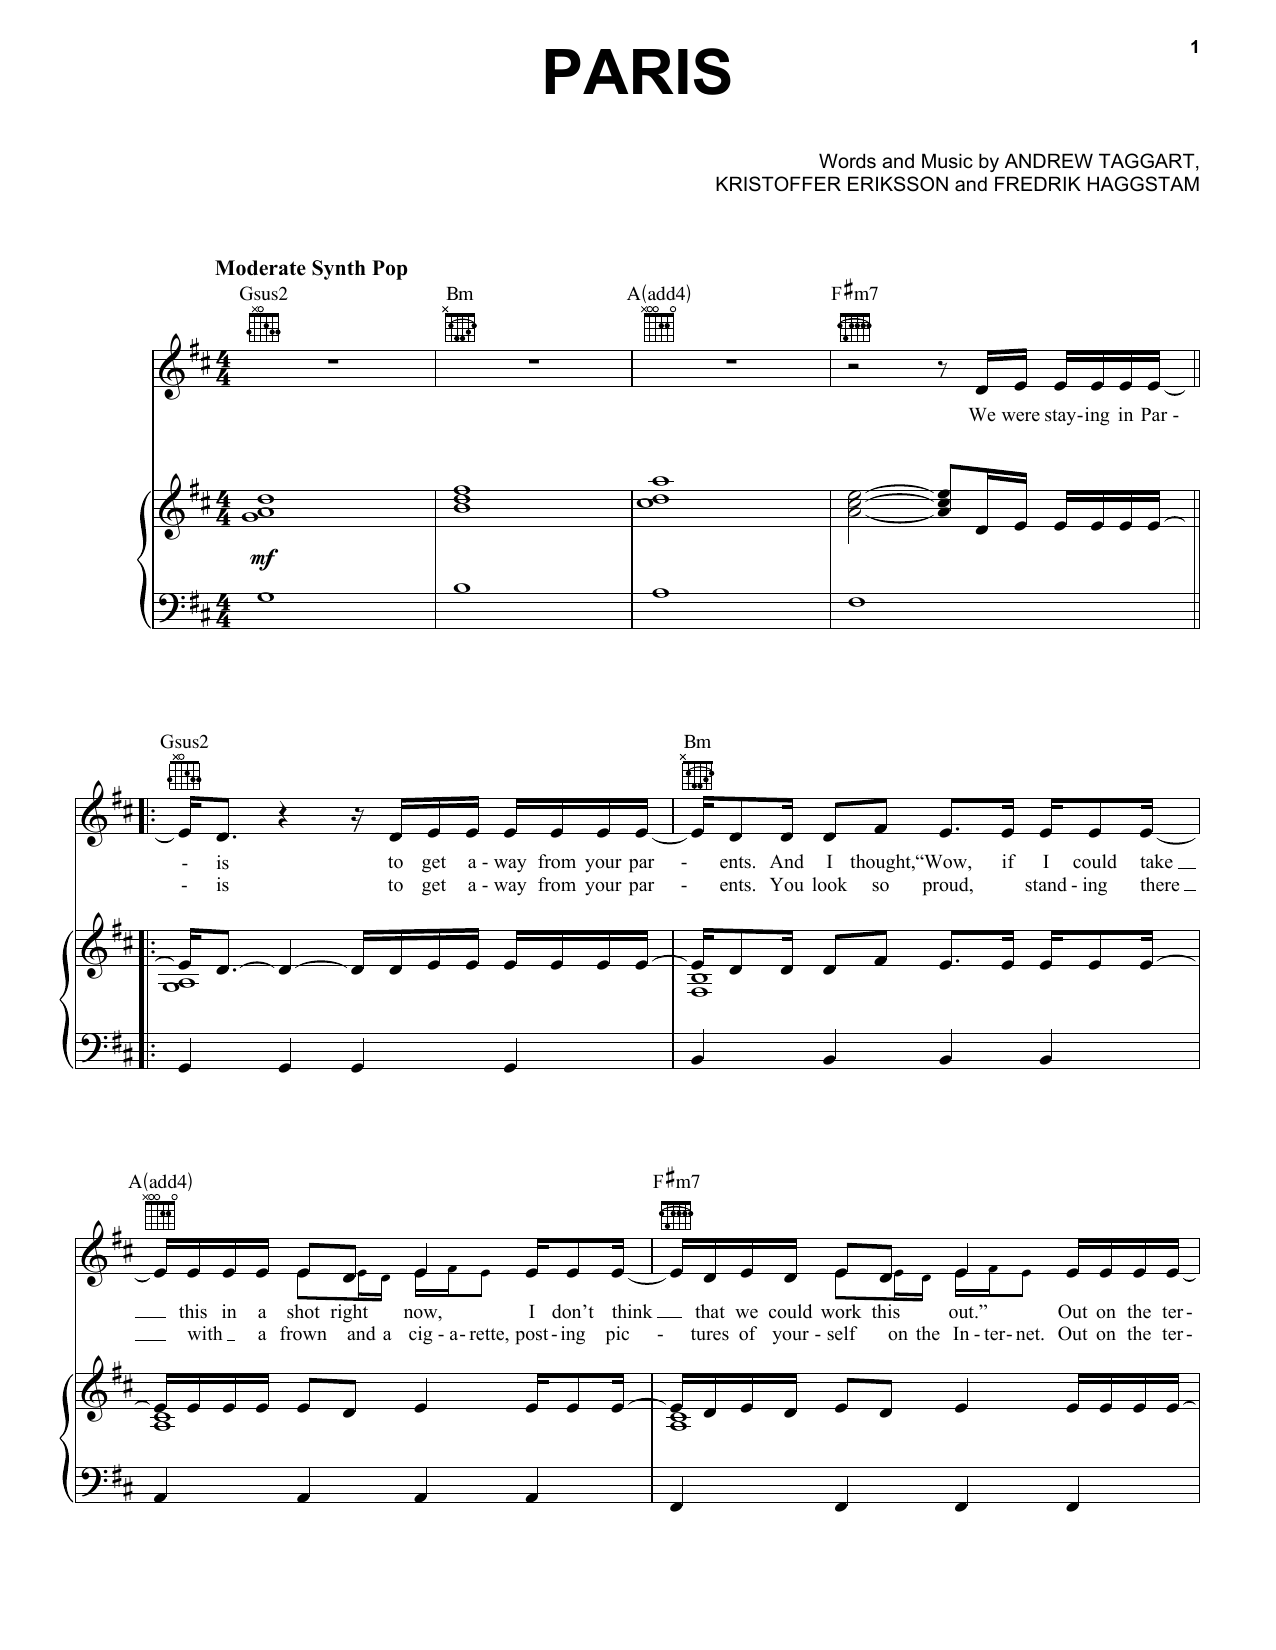 The chainsmokers paris sheet music notes paris noten pinterest the chainsmokers paris sheet music notes chords hexwebz Image collections